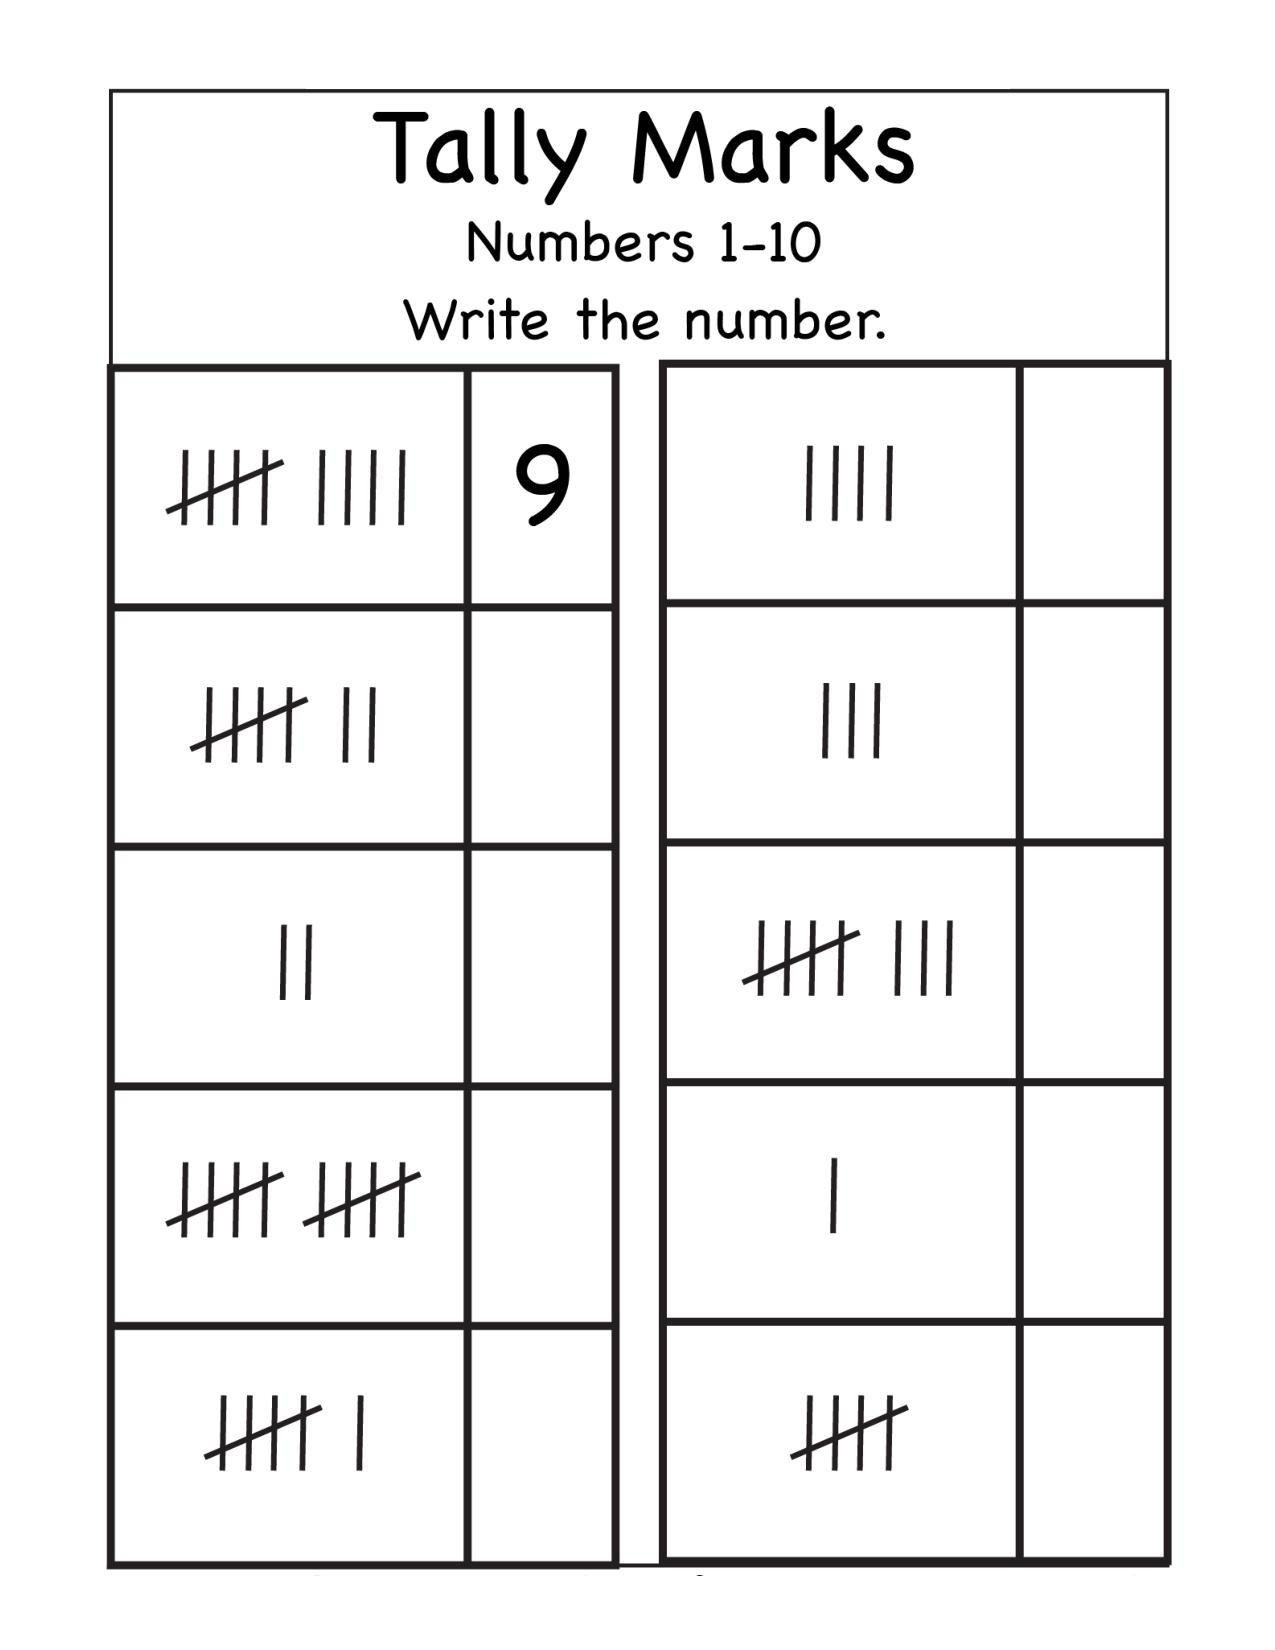 Tally Mark Worksheets for Kindergarten Kindergarten Tally Marks Worksheet